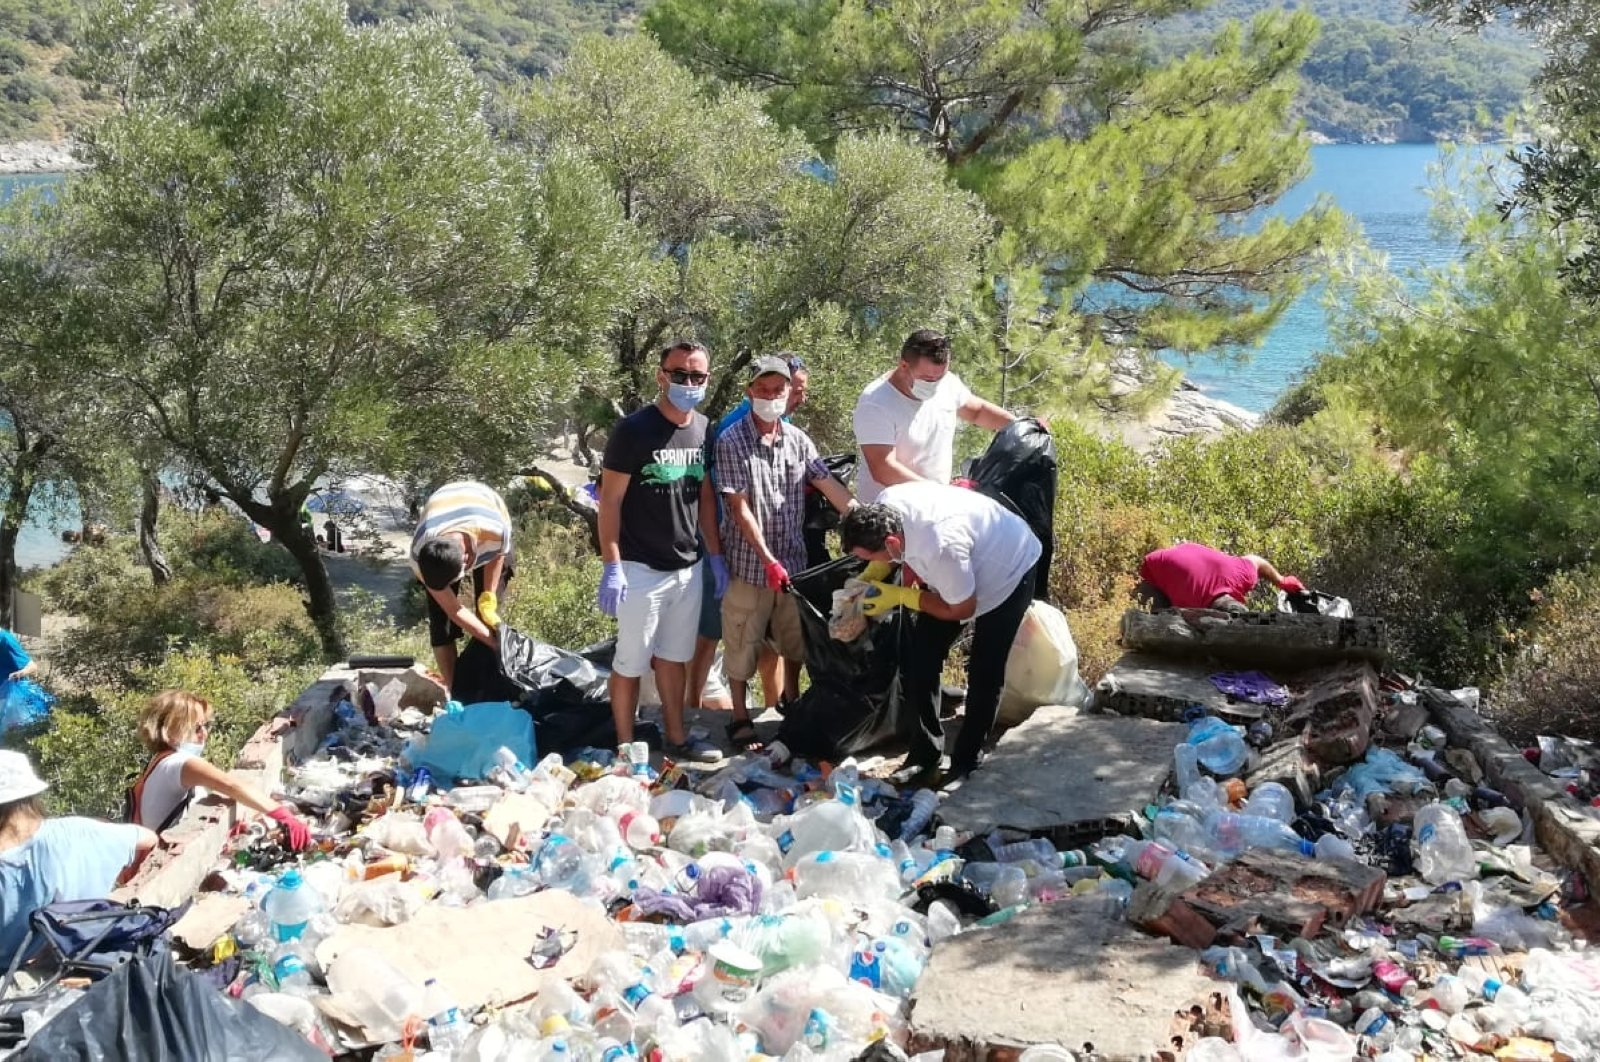 Volunteers stand beside a pile of collected garbage in Darboğaz Bay, in the Fethiye district of Muğla province, southwestern Turkey, Aug. 23, 2020. (AA Photo)